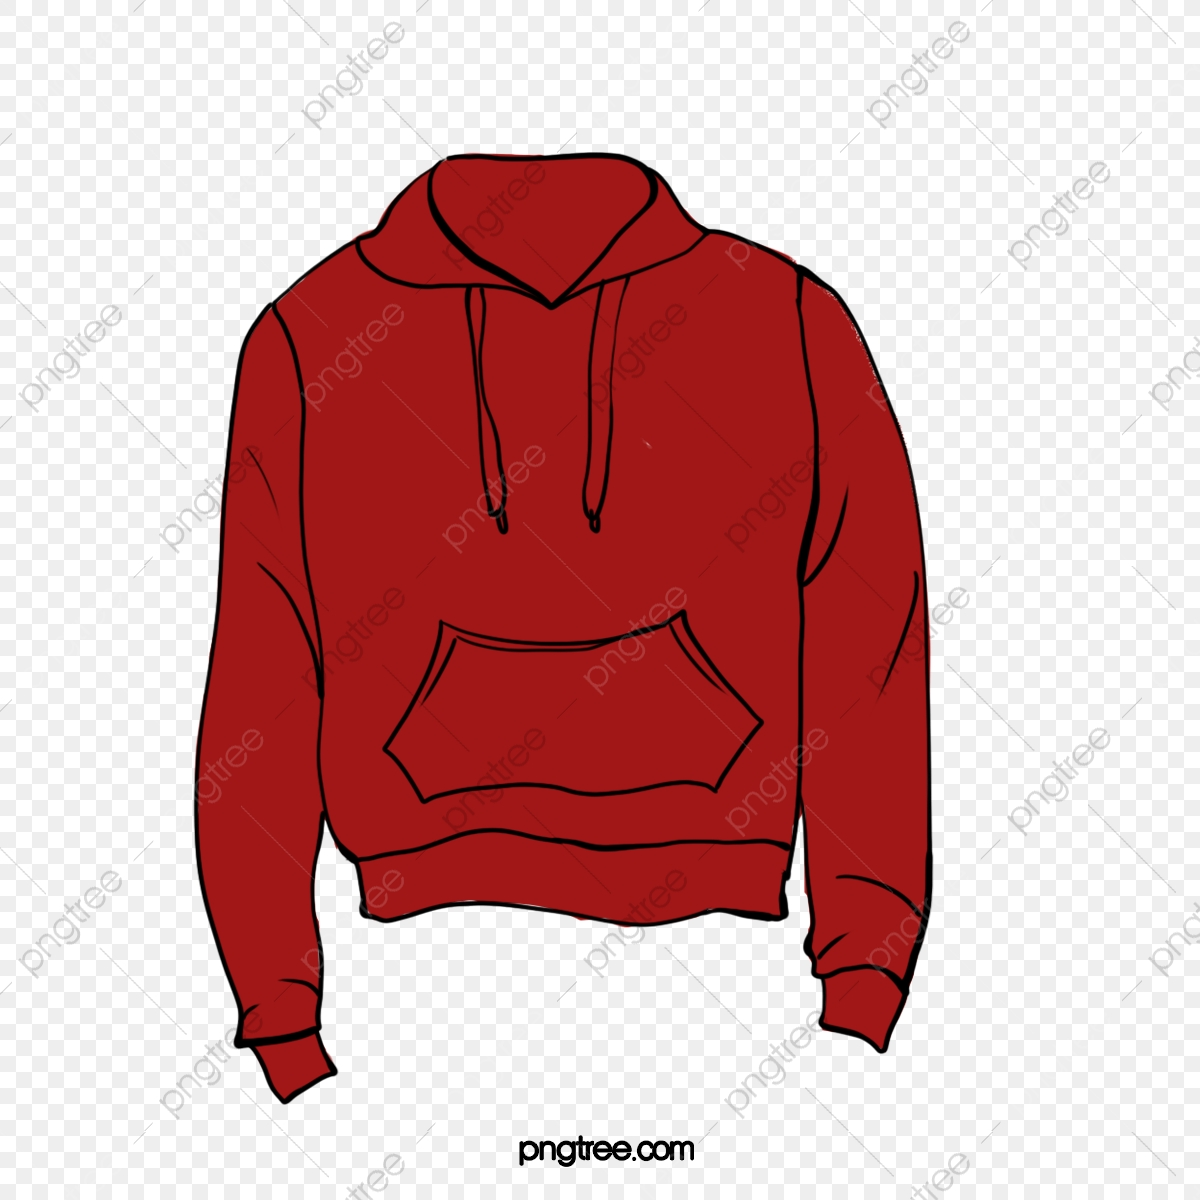 Hoodie clipart red hoodie. Vector old clothes washed